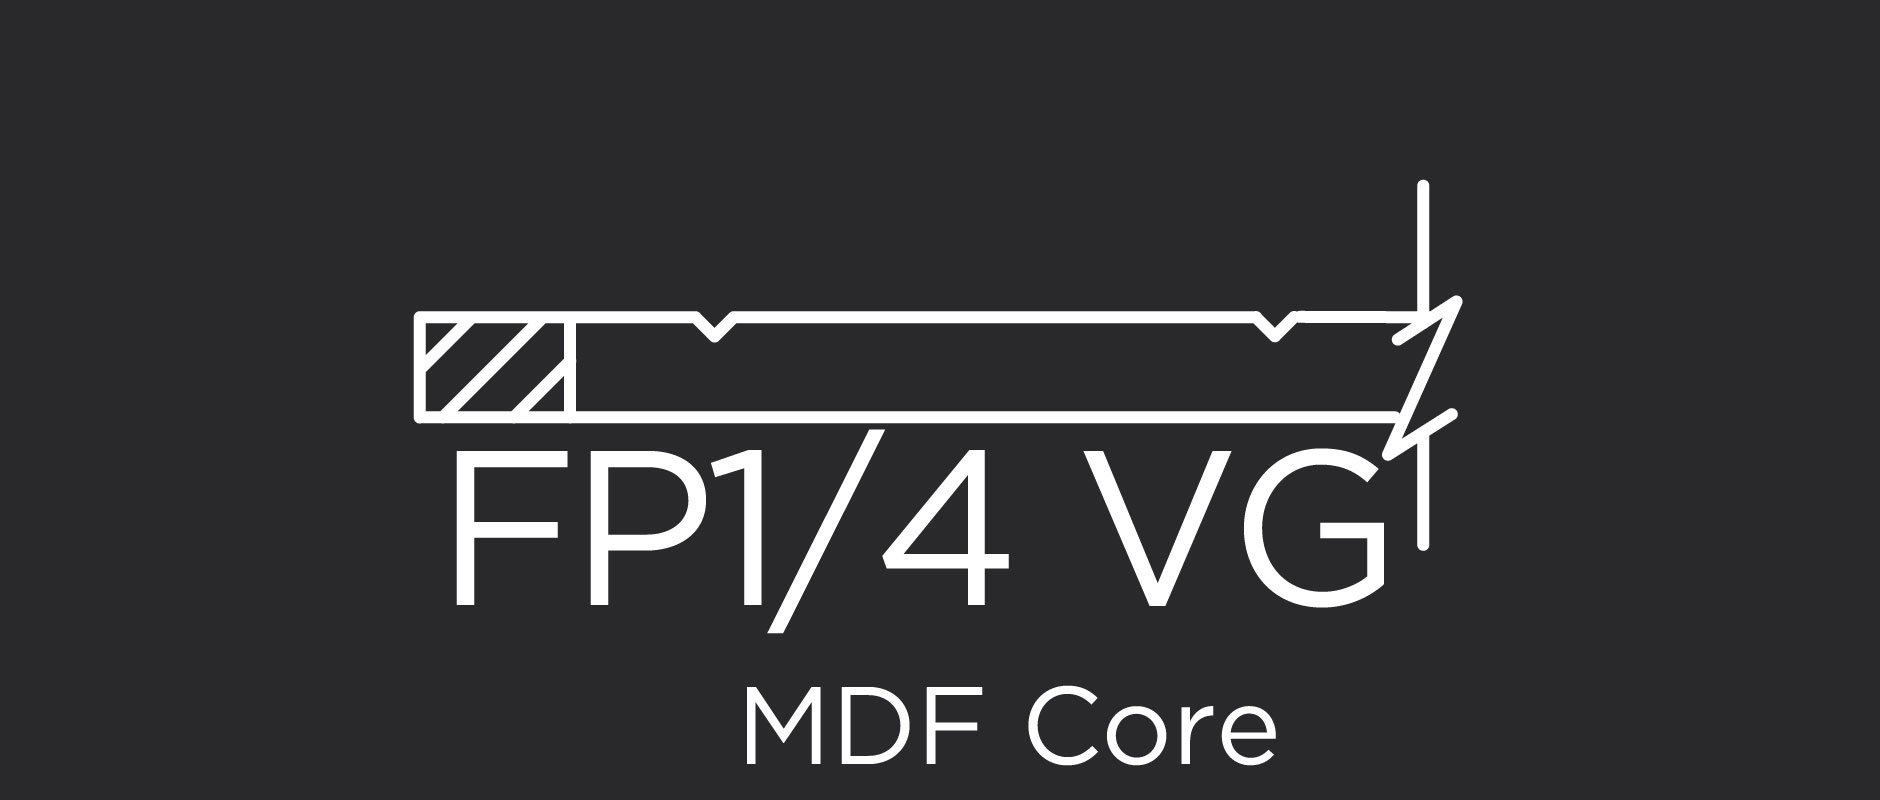 FP1/4 VG MDF core flat panel with v-grooves